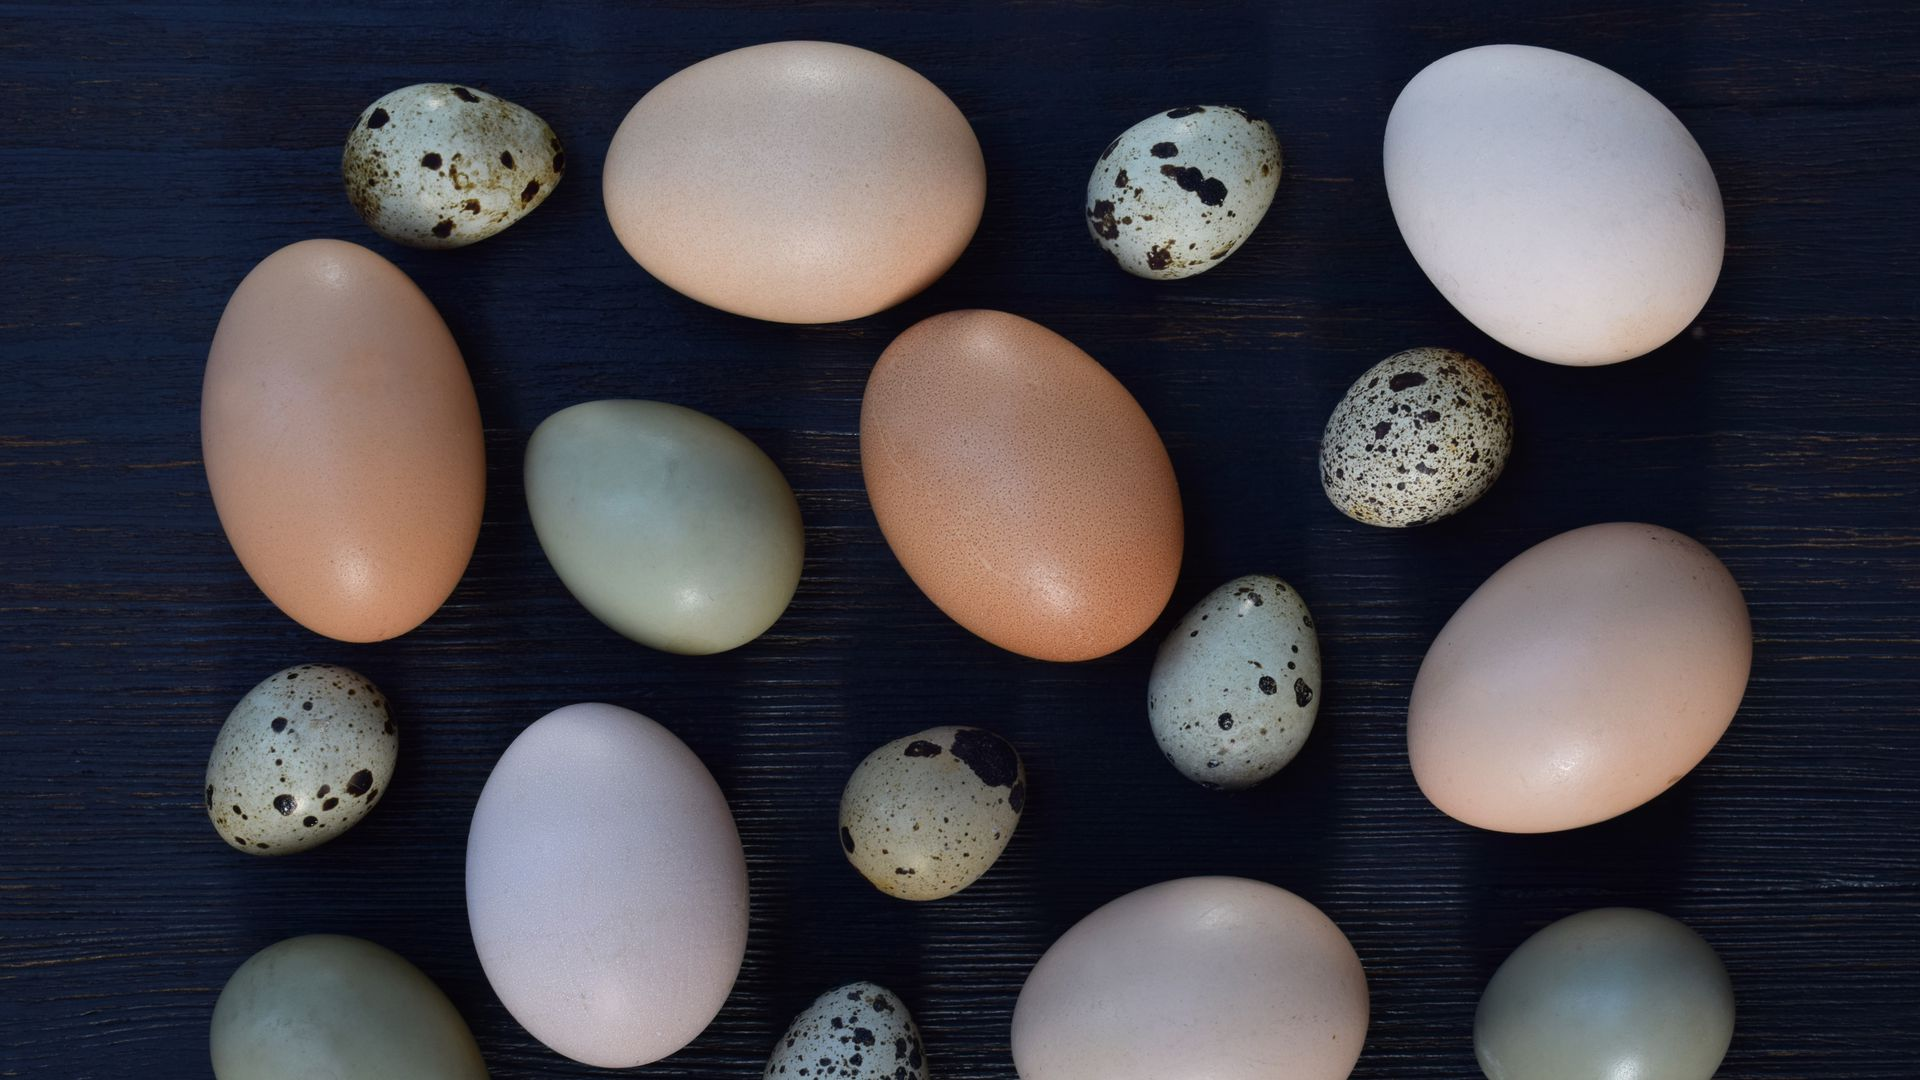 Several different bird eggs with varying colors and sizes placed on a dark background